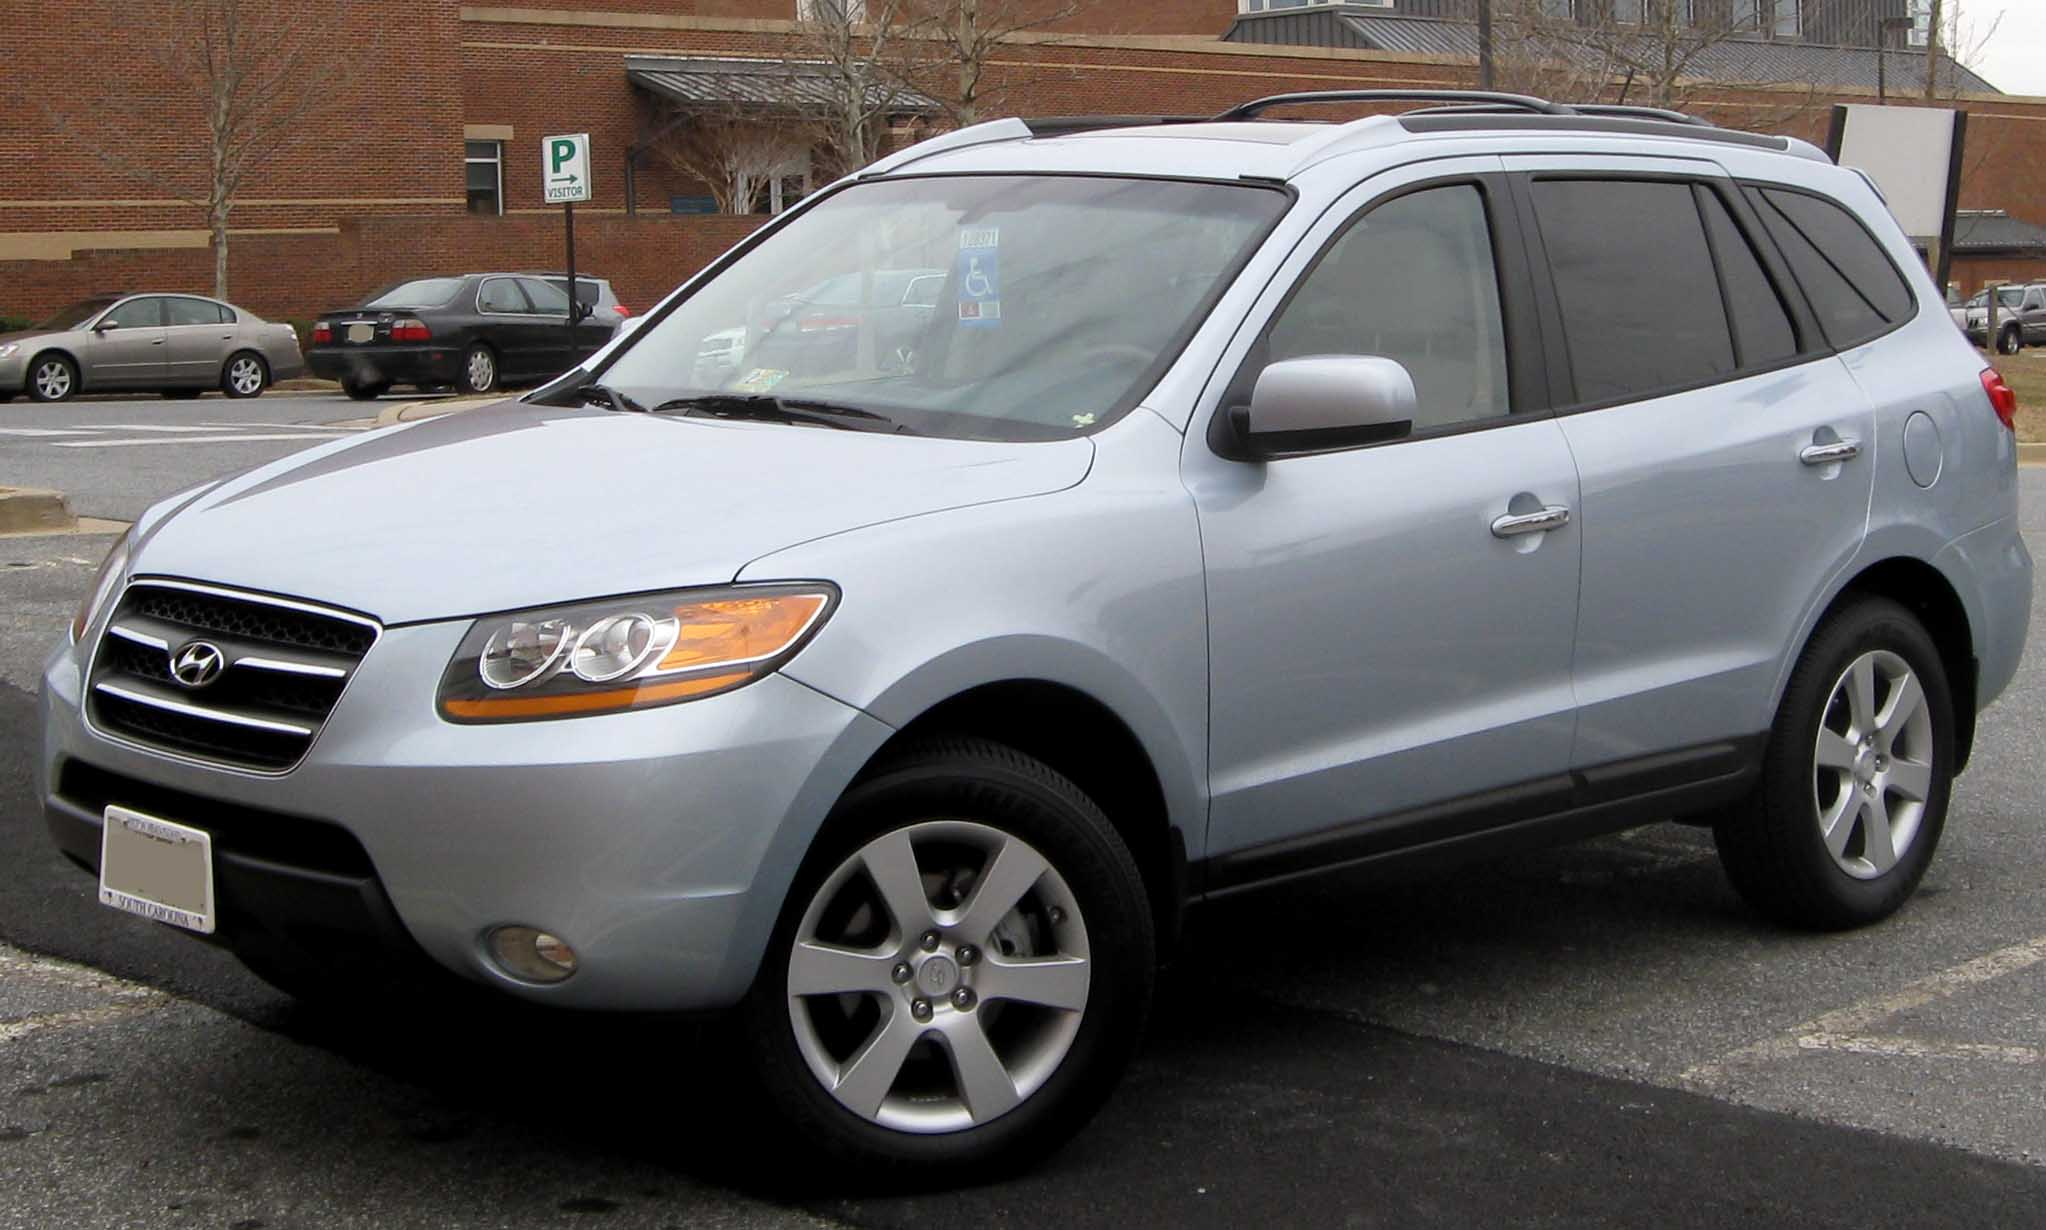 File:2nd Hyundai Santa Fe Limited.jpg